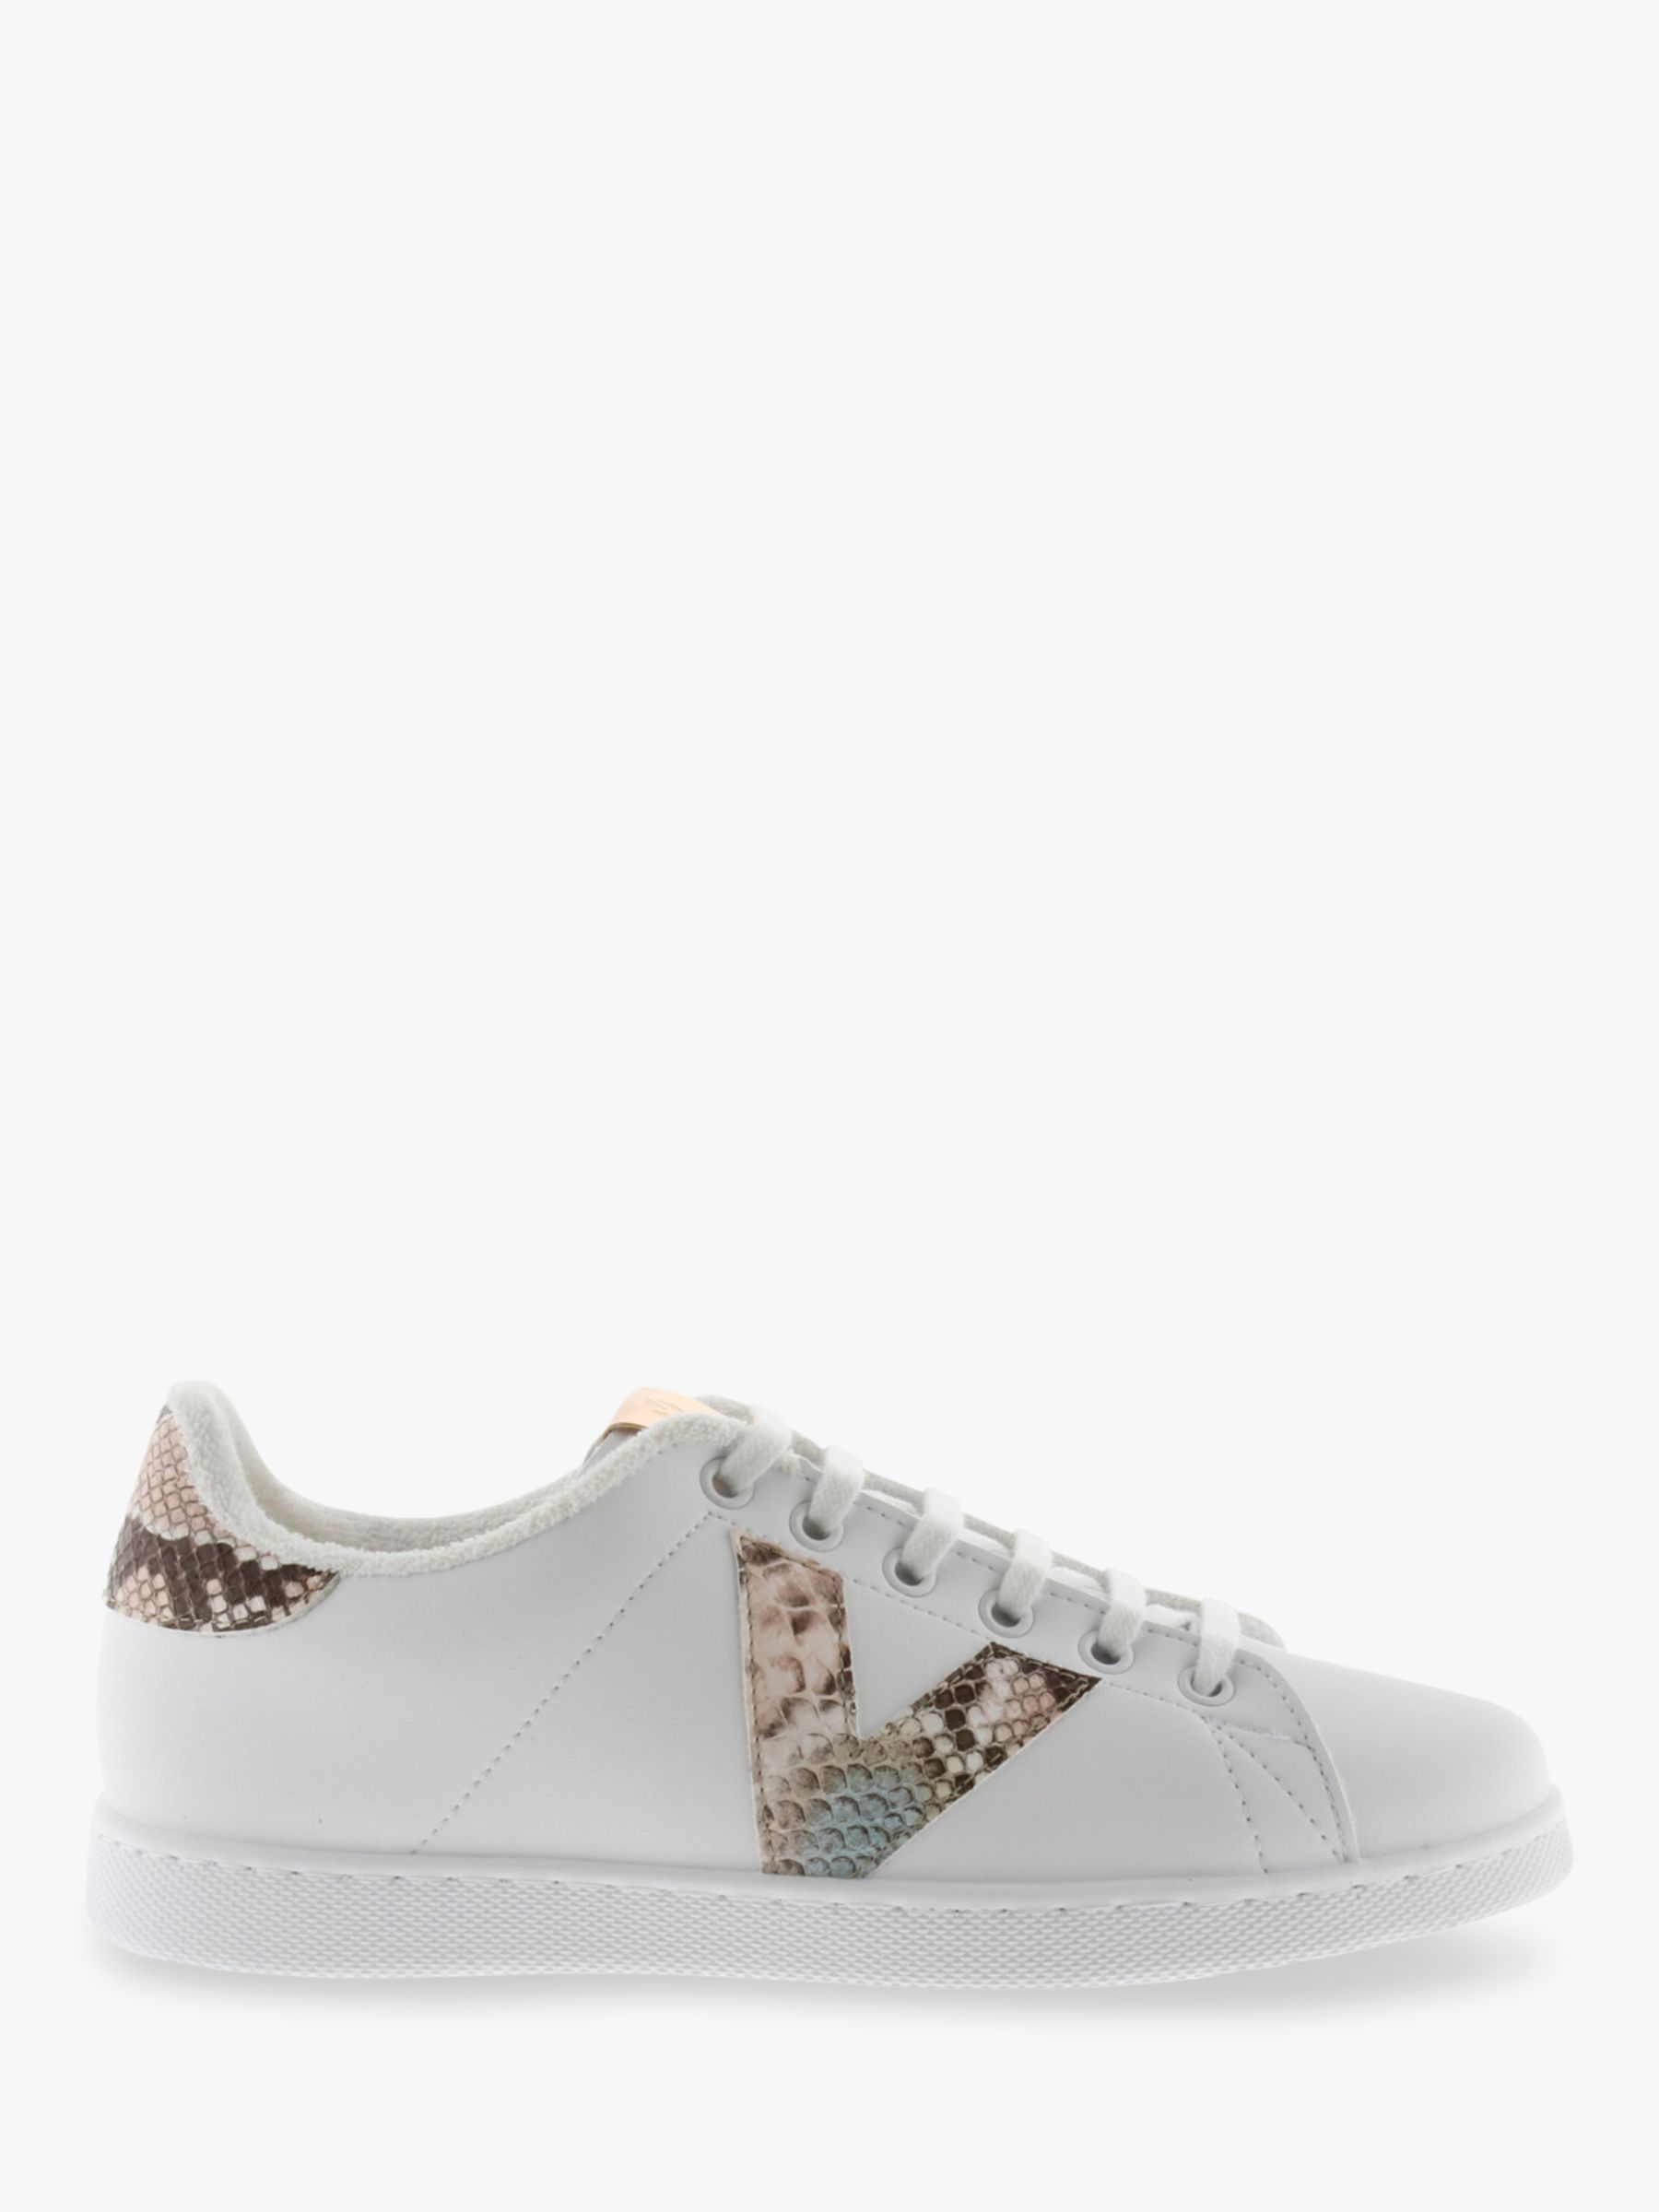 Victoria Shoes Victoria Shoes Tenis Serpiente Snake Print Trainers, White/Nude